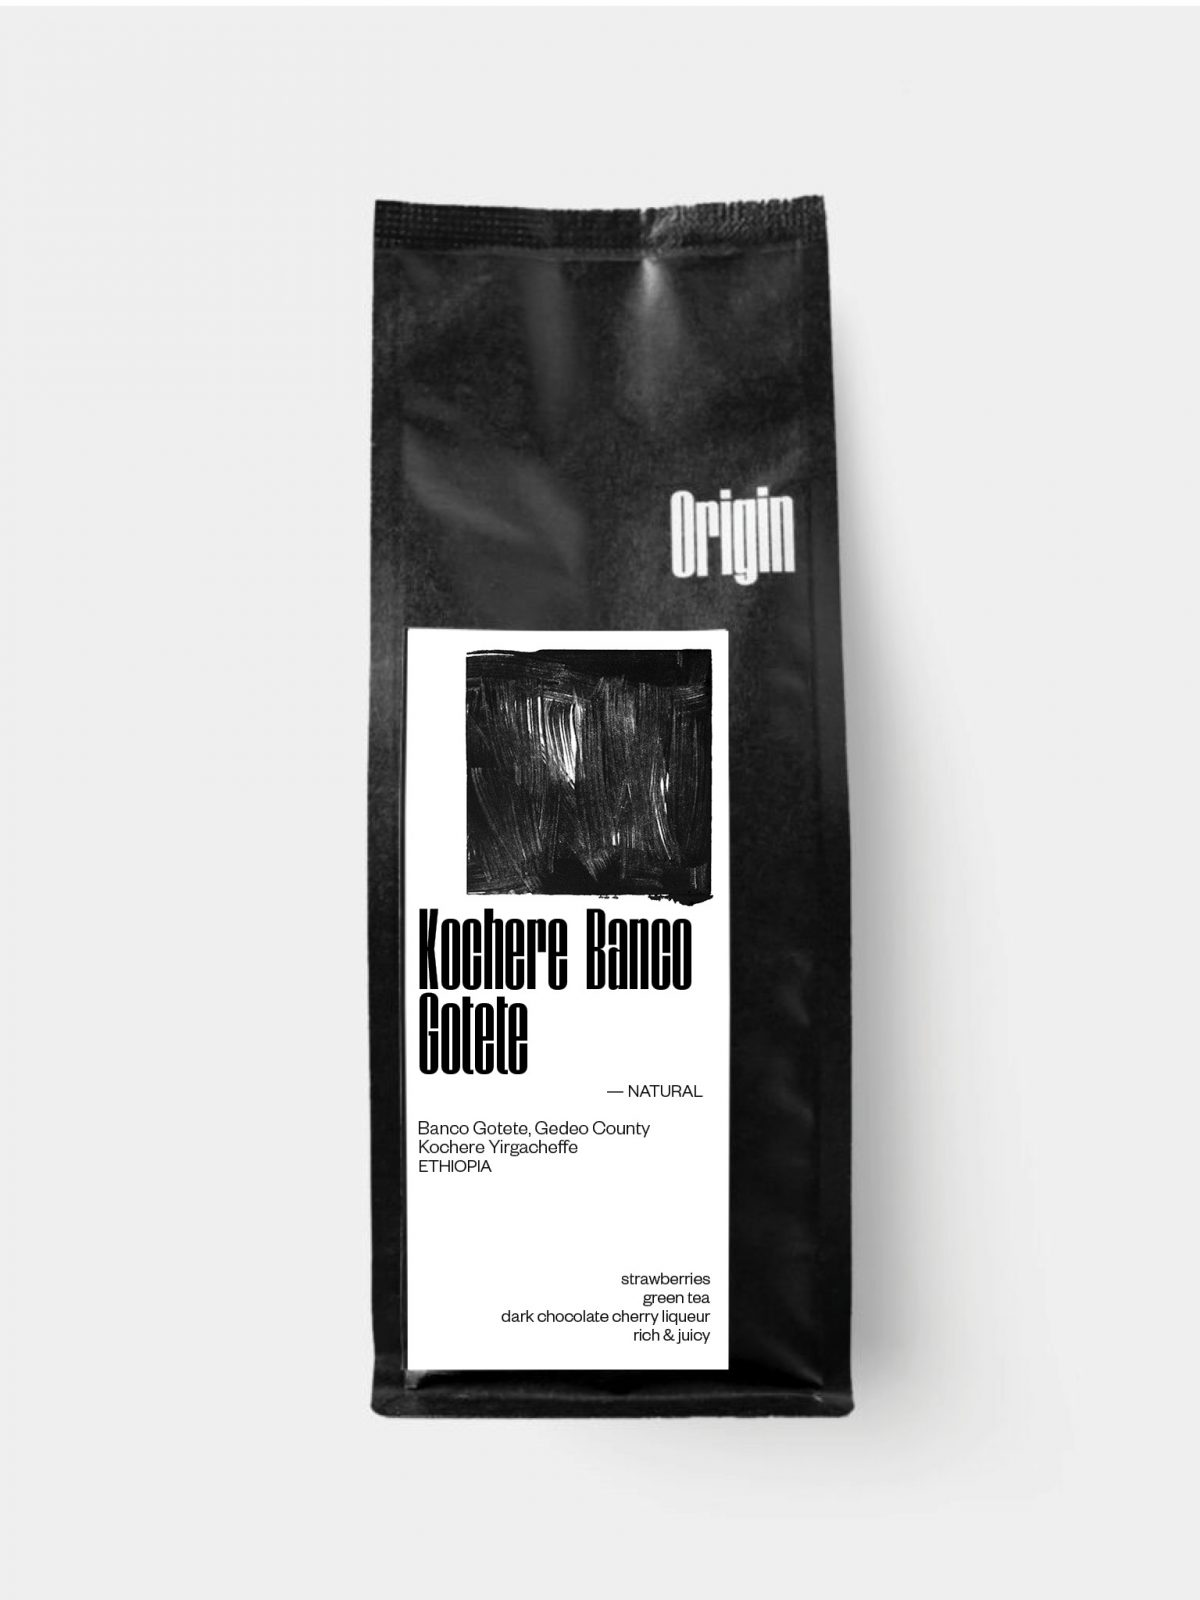 Ethiopia Banco Gotete Natural - on the 250g bag